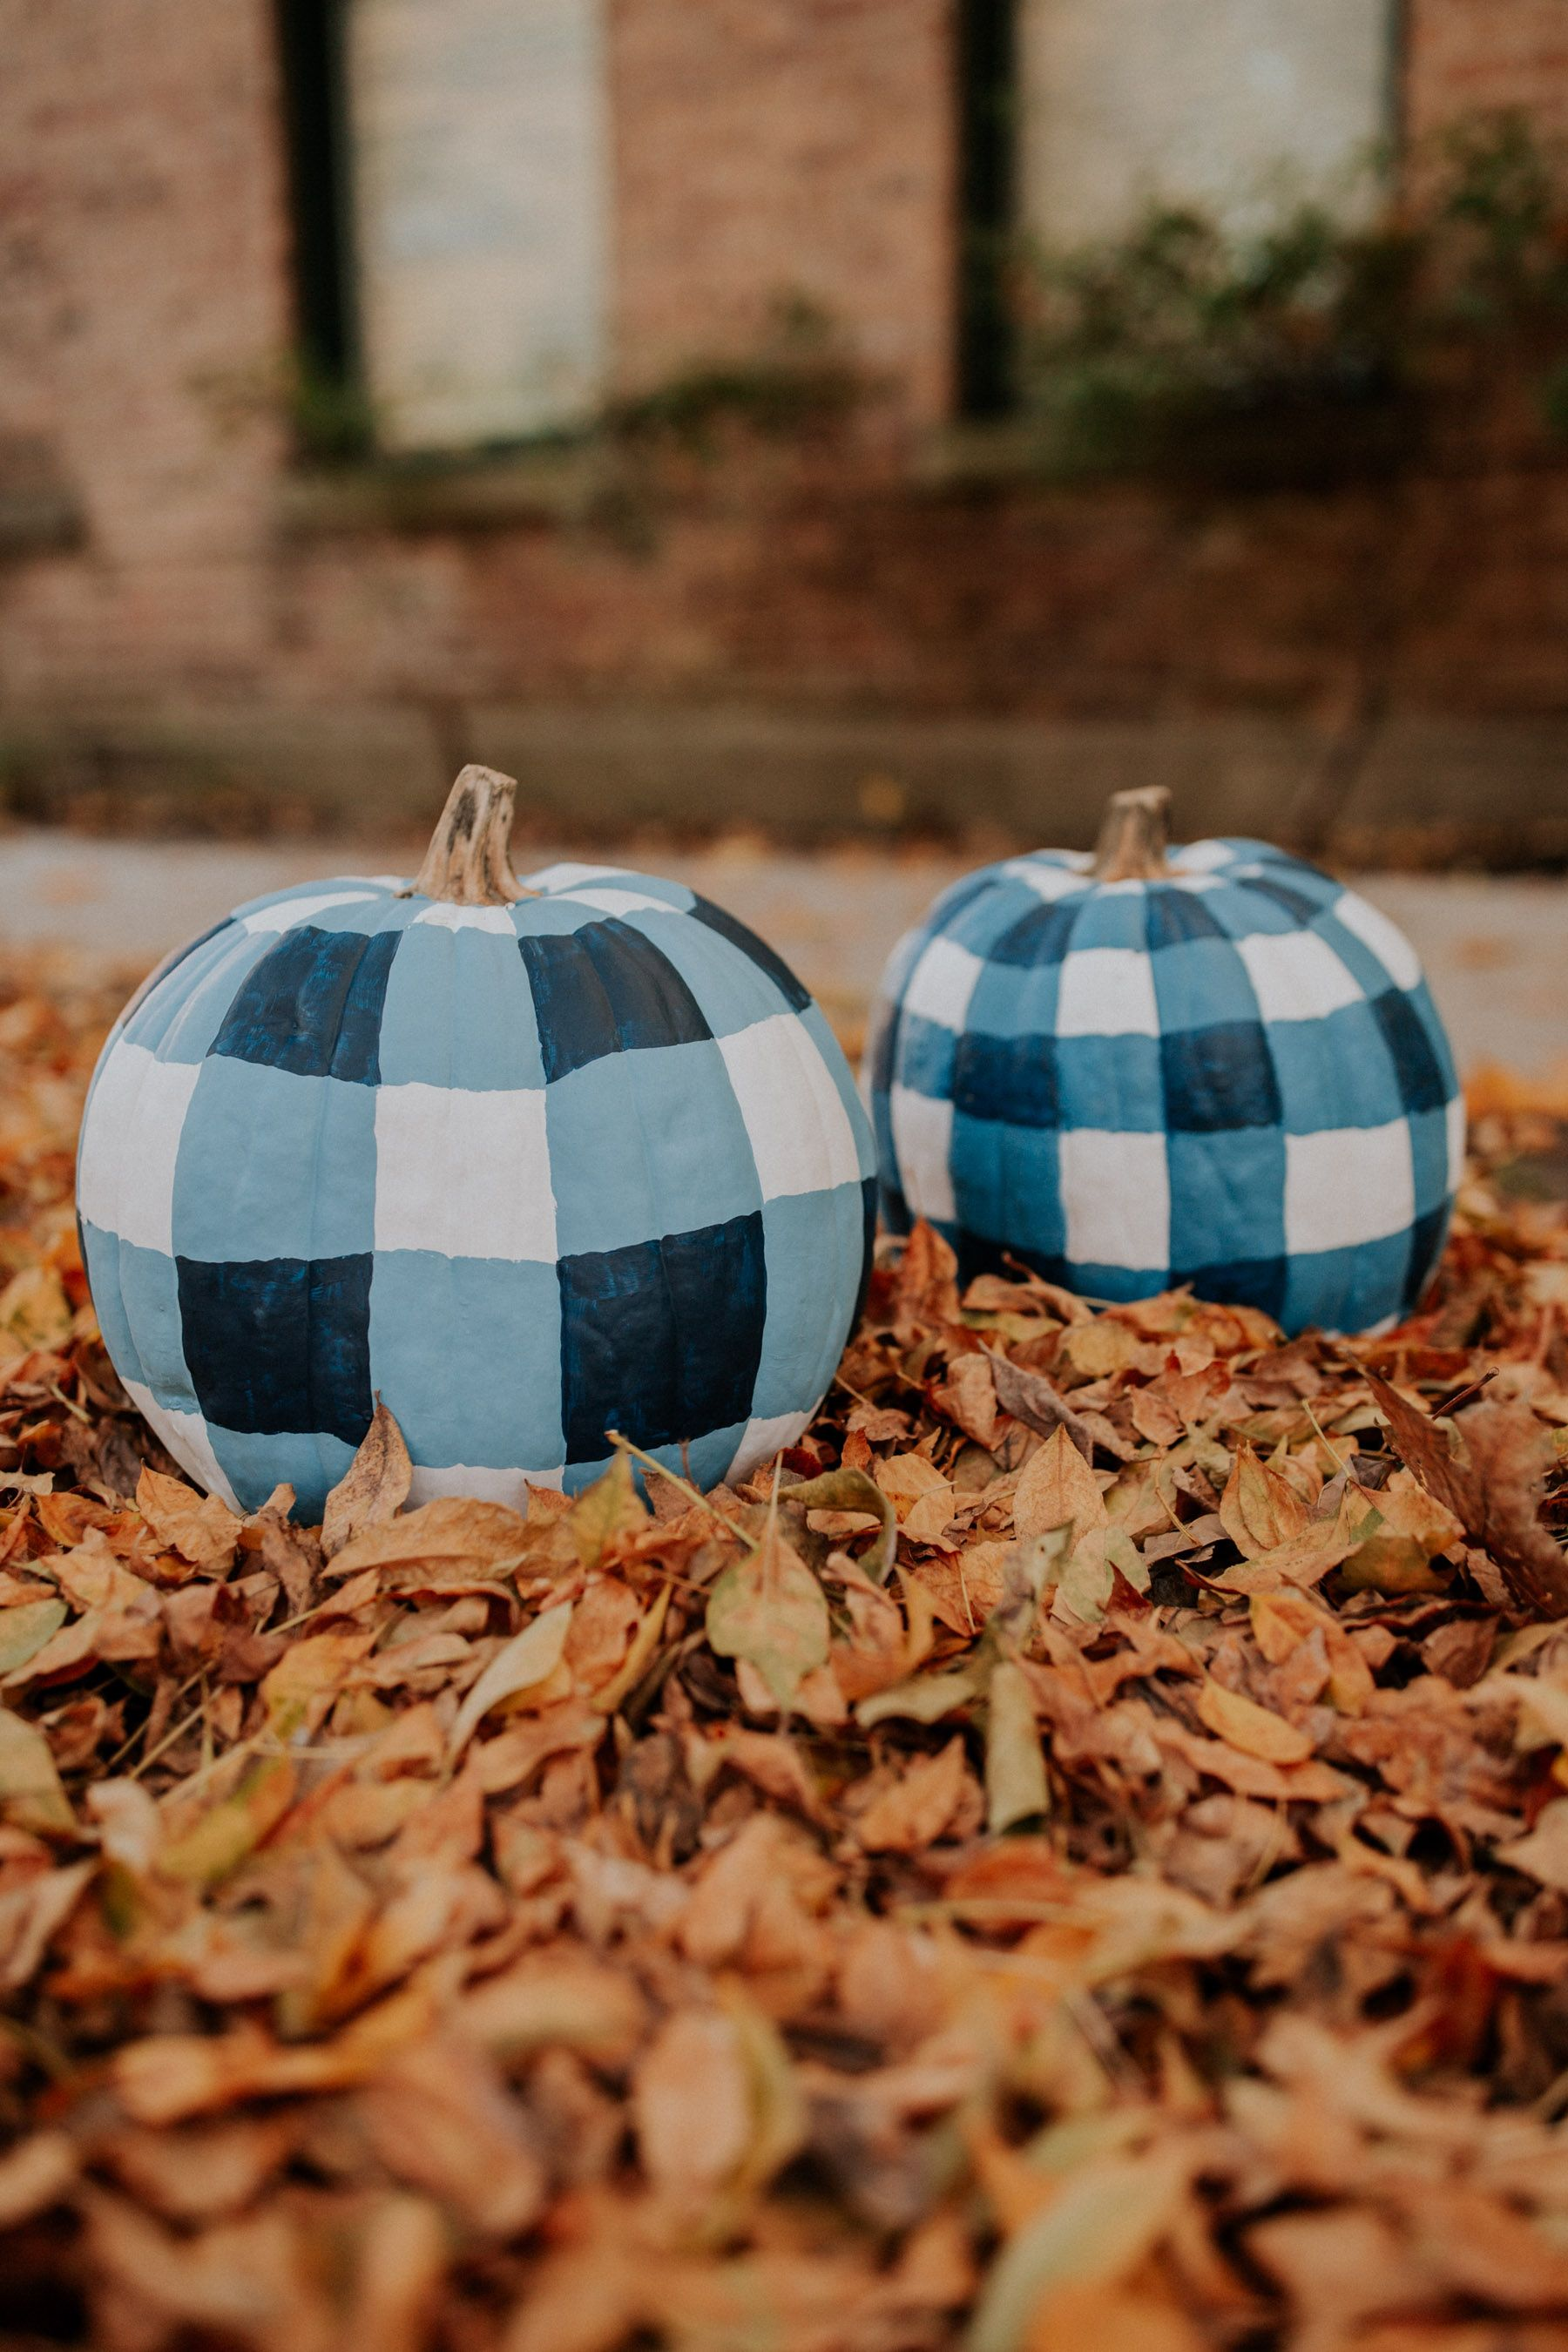 65 Easy Painted Pumpkins Ideas   No Carve Halloween Pumpkin Painting     gingham painted pumpkins